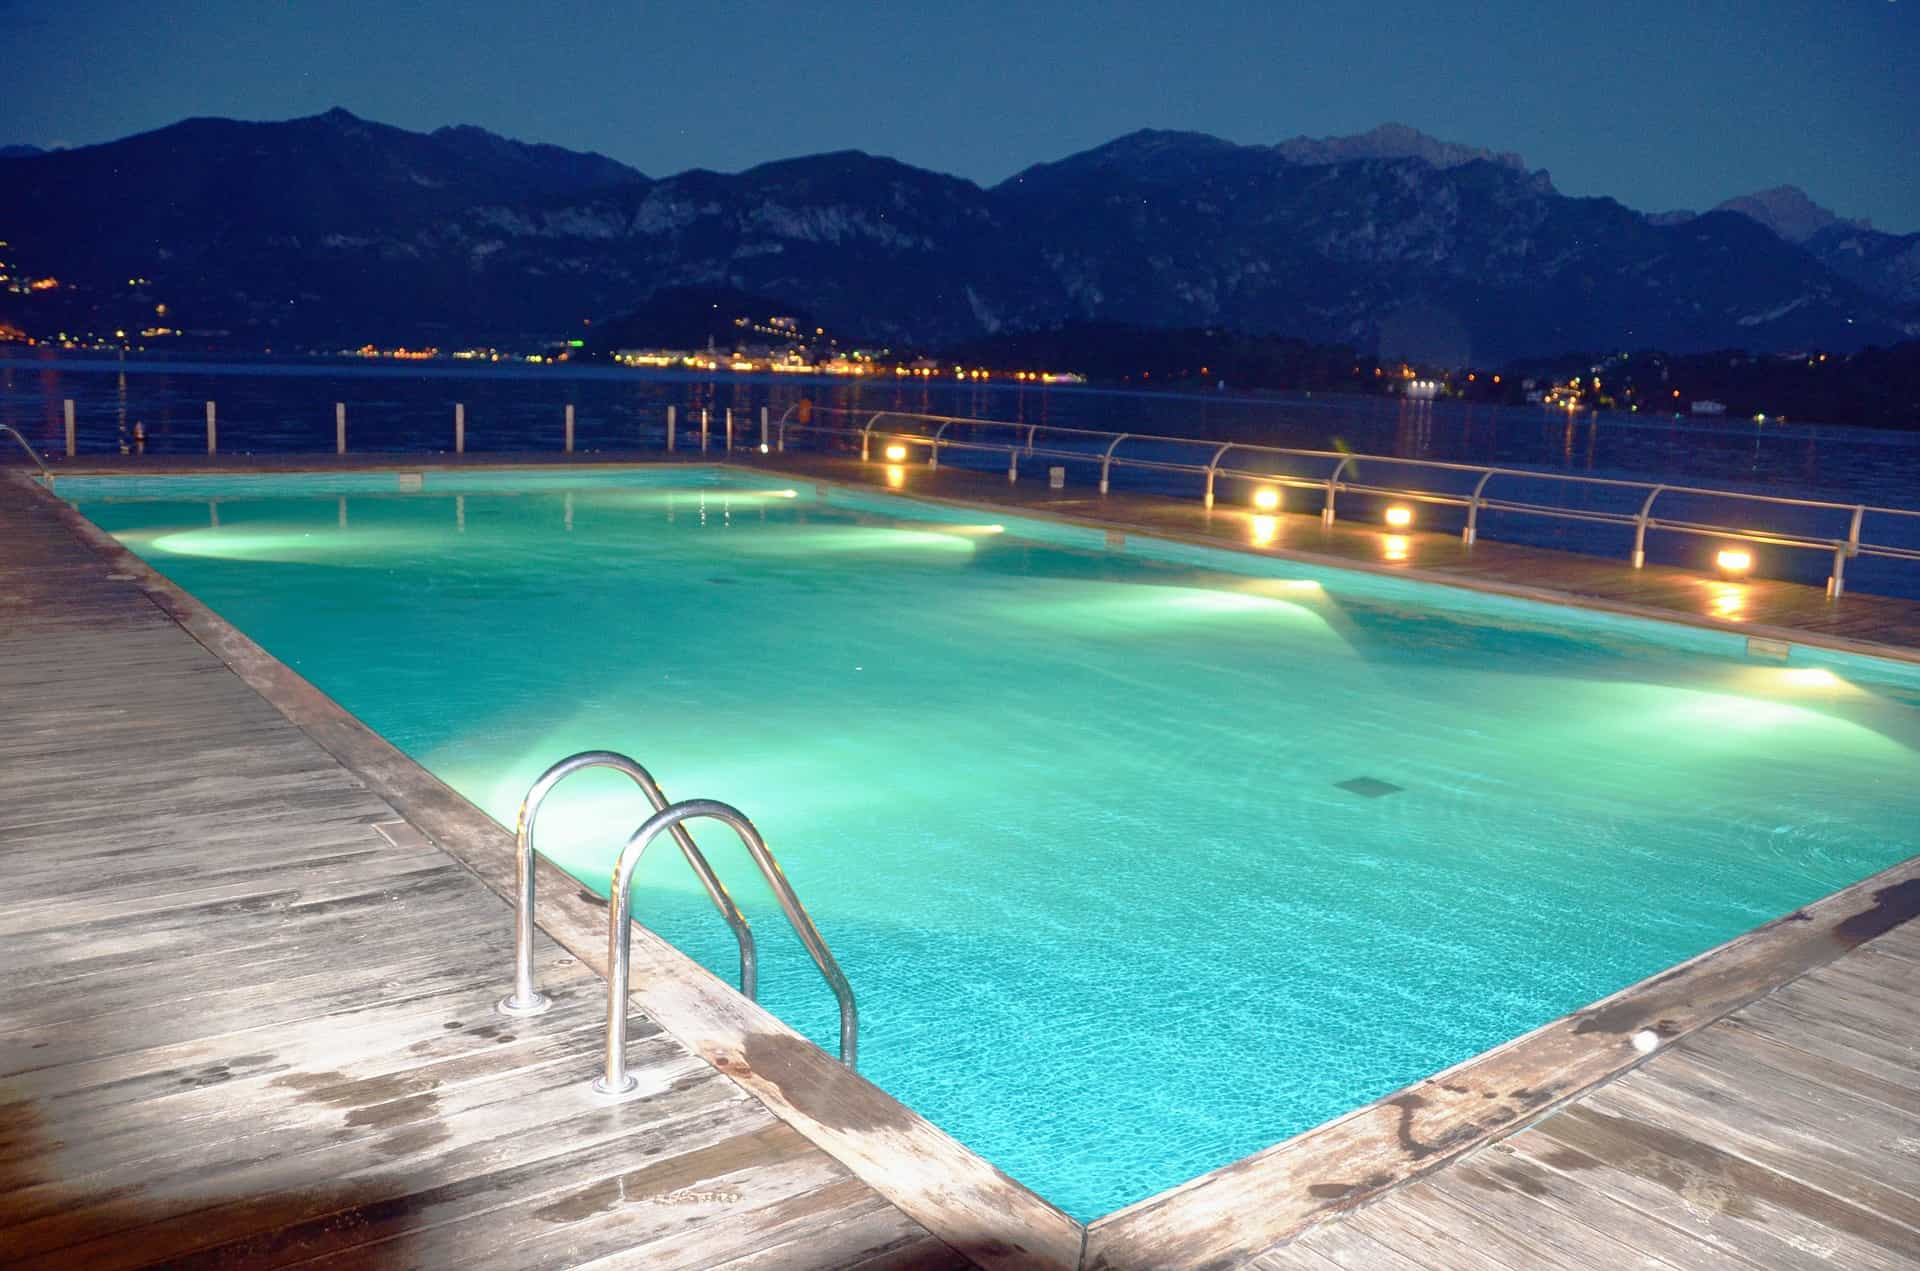 Pool with lights at night